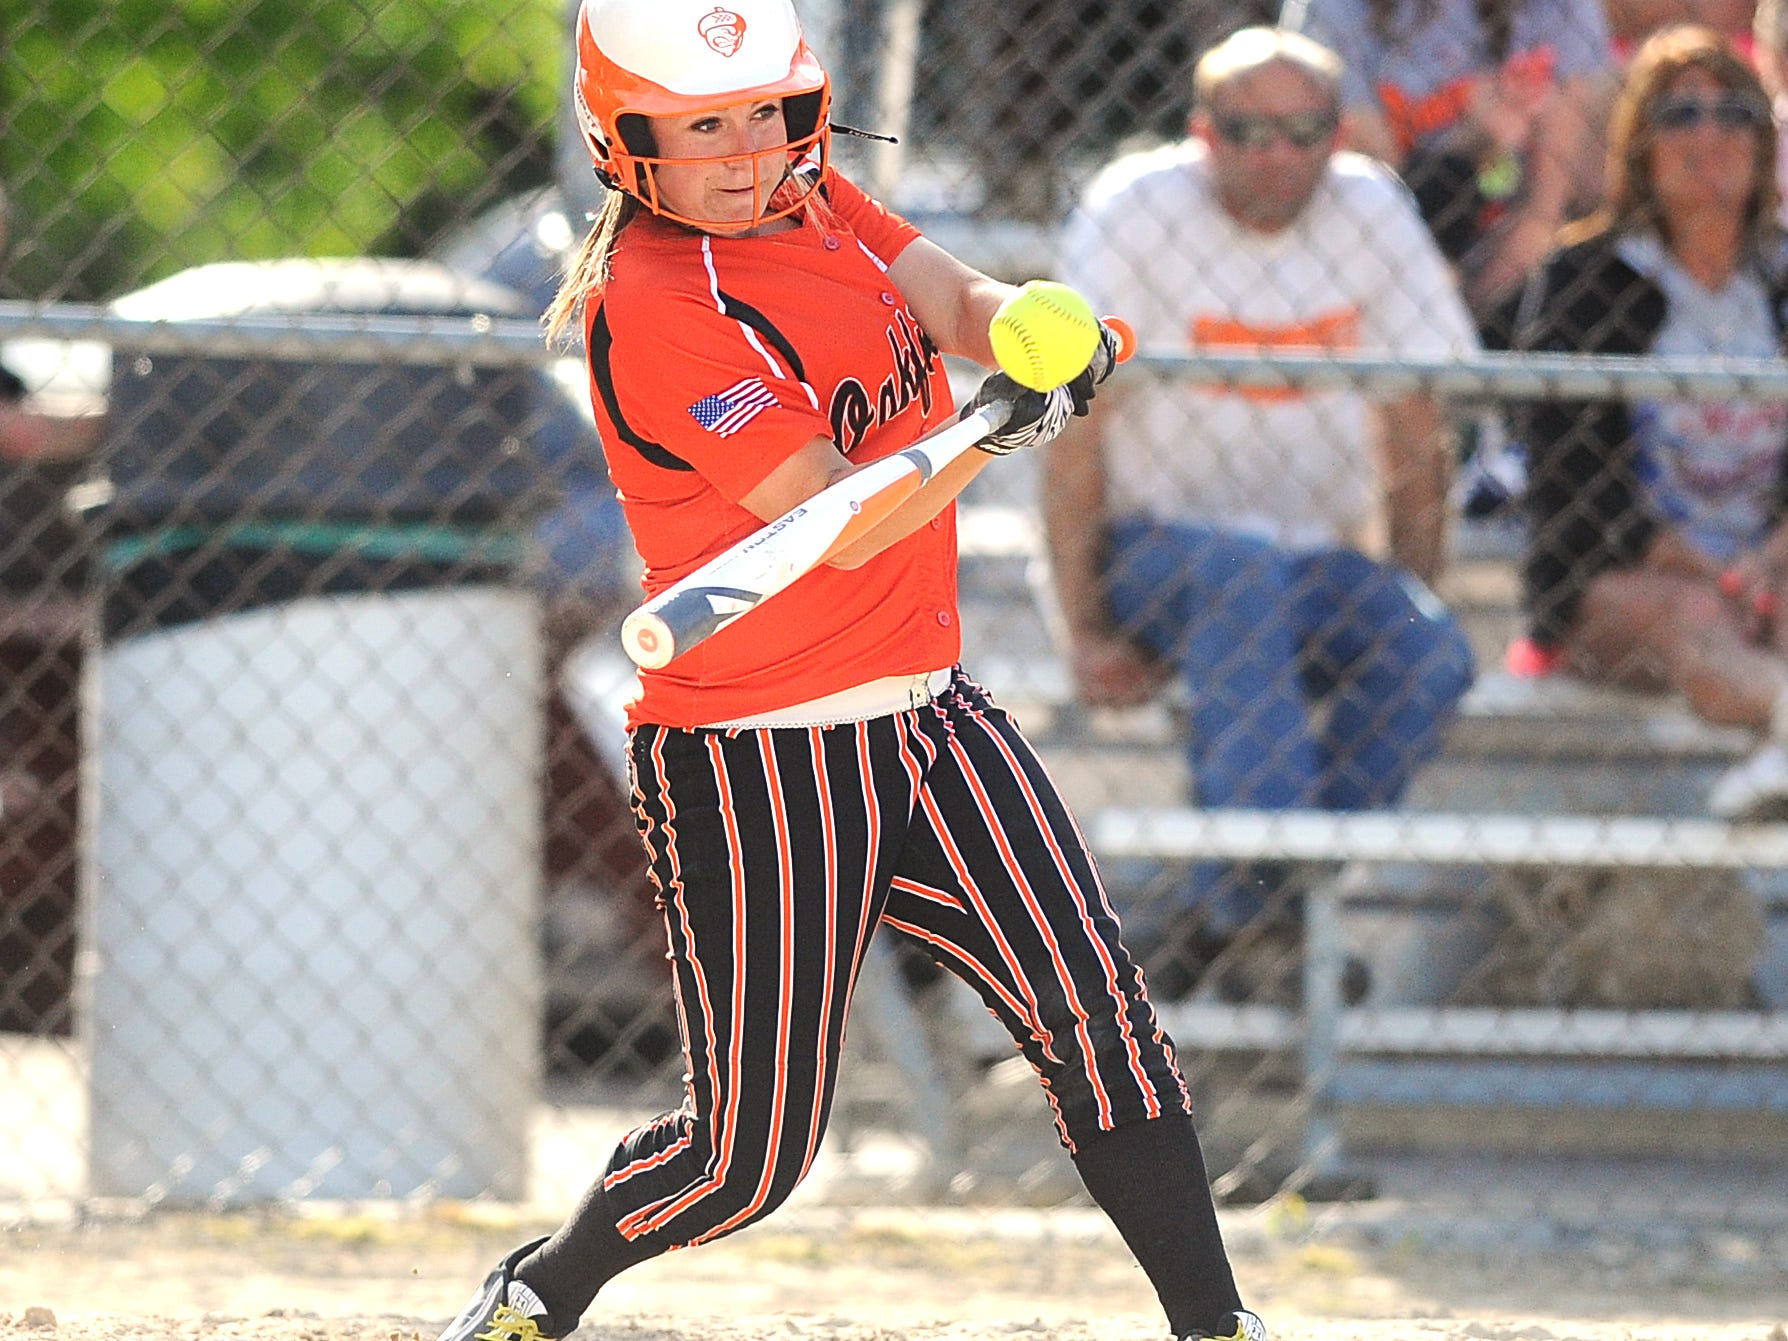 Oakfield's Alyssa Sabel singles in the second inning during the Oaks' game Friday against Oconomowoc.